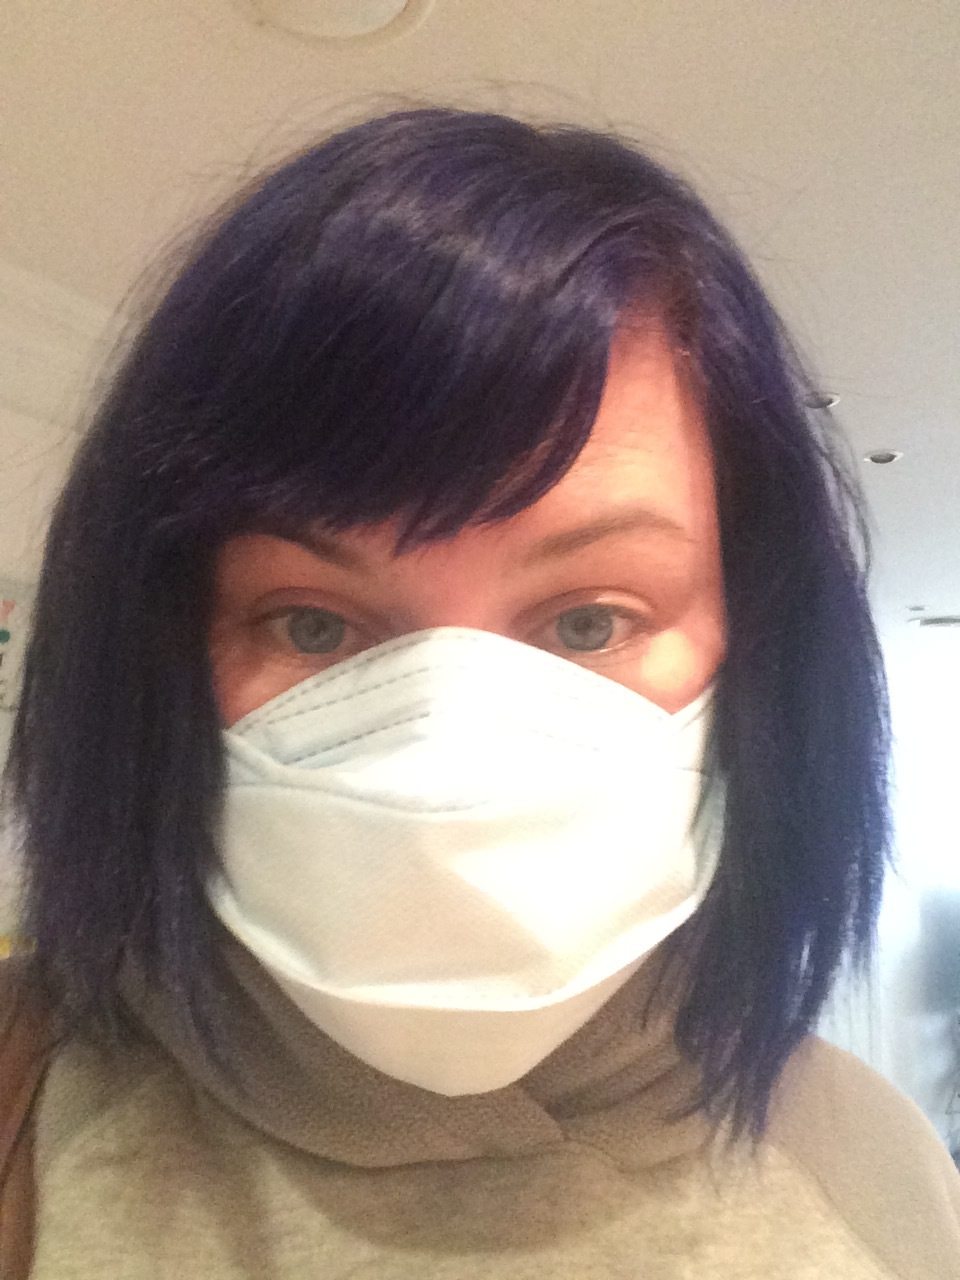 Me before leaving for eMart yesterday. Shredder mask 4EVA.